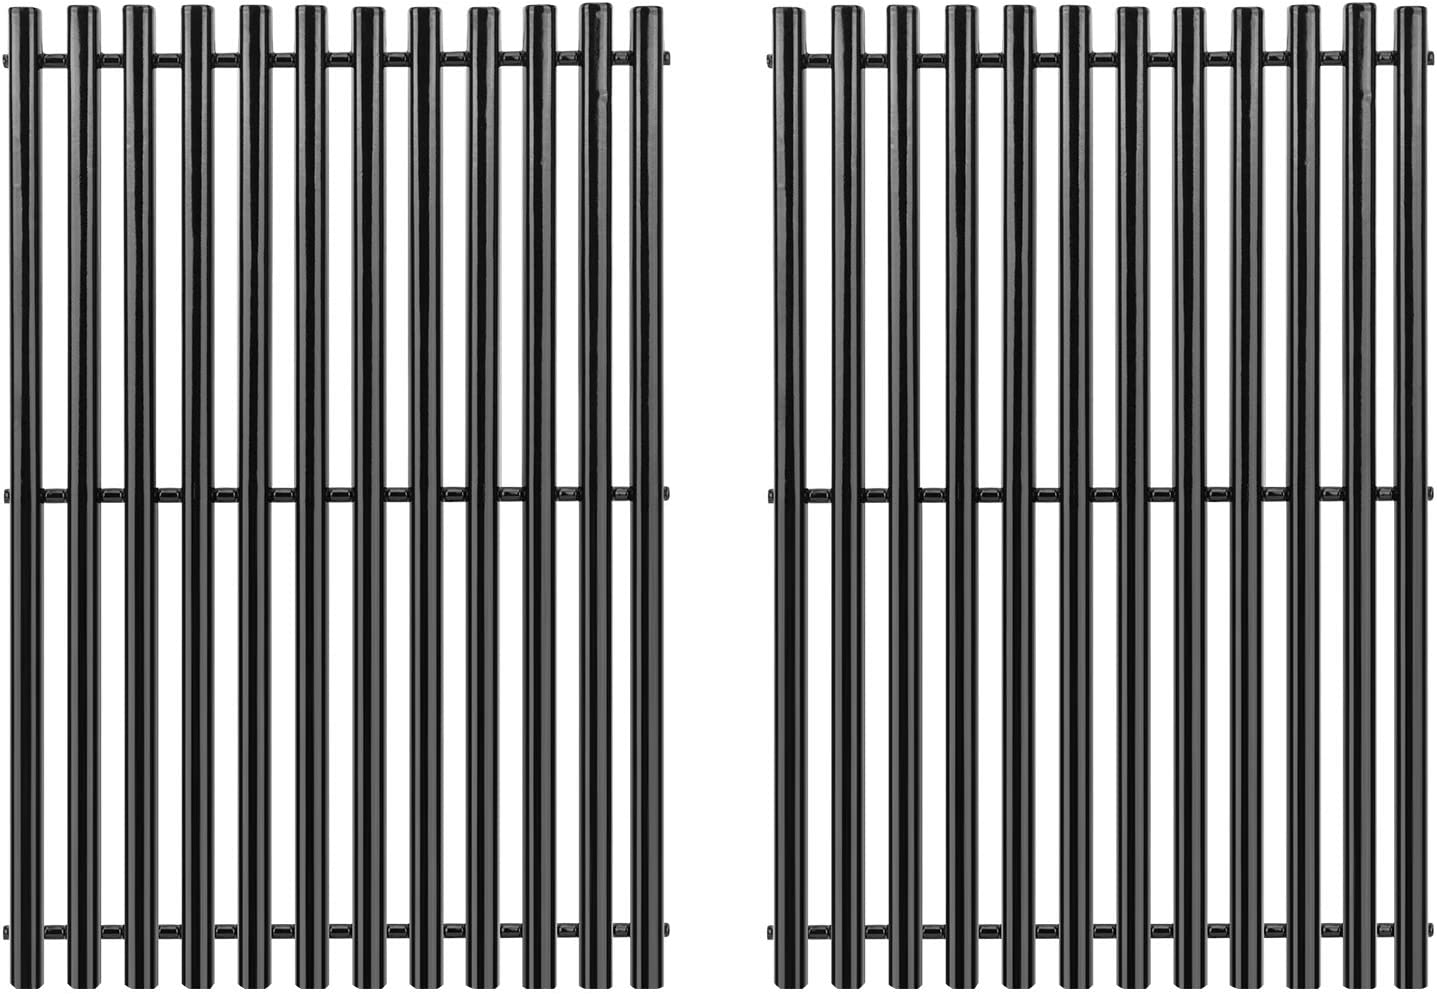 DcYourHome Grill Grates for Weber Grill Replacement Parts, 7525 Porcelain Enameled Grill Grates for Weber Spirit 300 Series, Genesis Silver Gold B/C Replacement Weber 7525 Grates